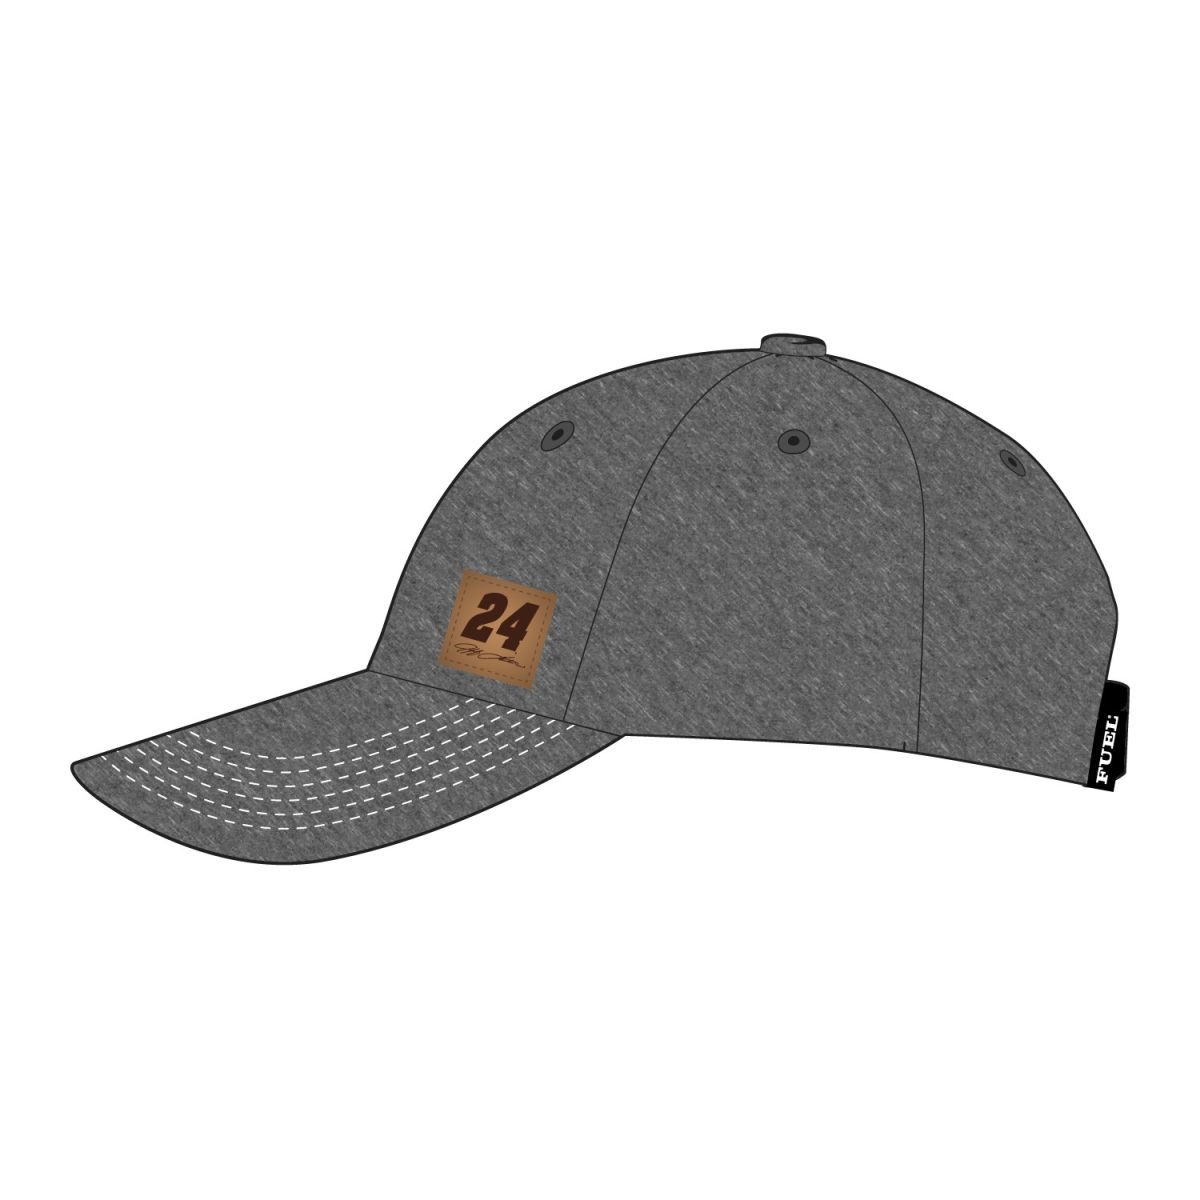 Jeff Gordon #24 Leather Patch Hat by Fuel Clothing